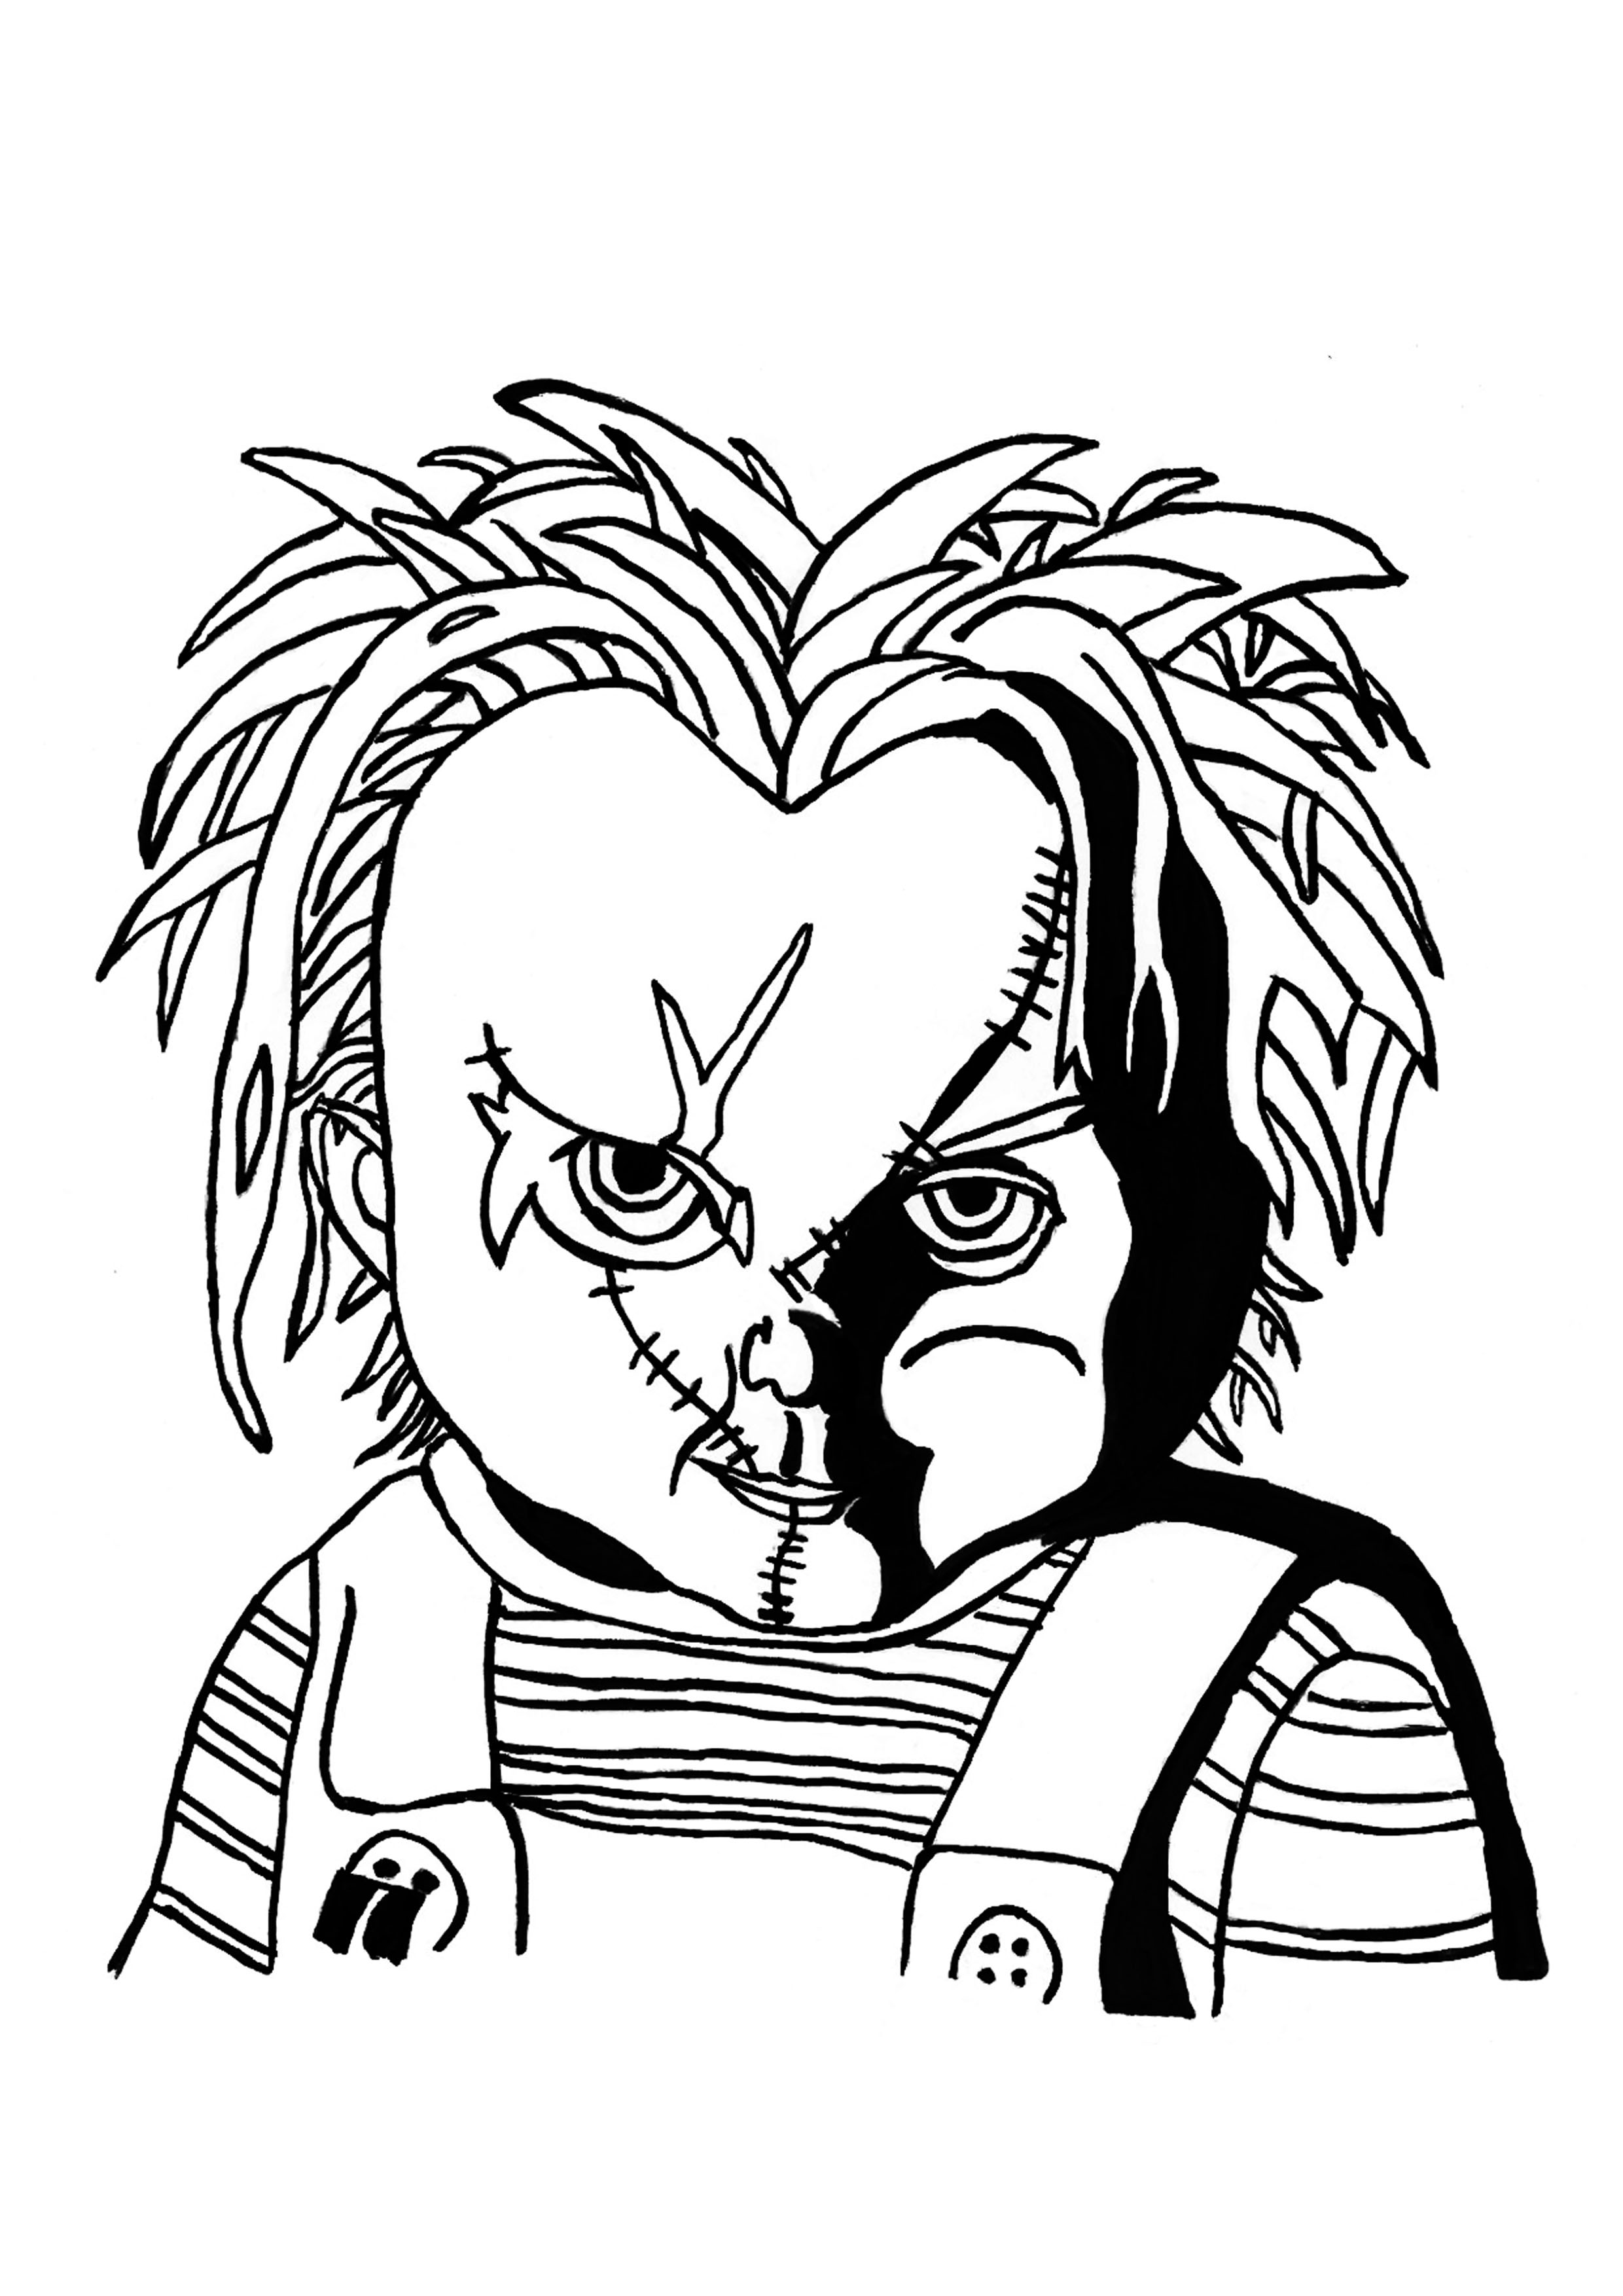 Chucky Coloring Pages - Coloring Home